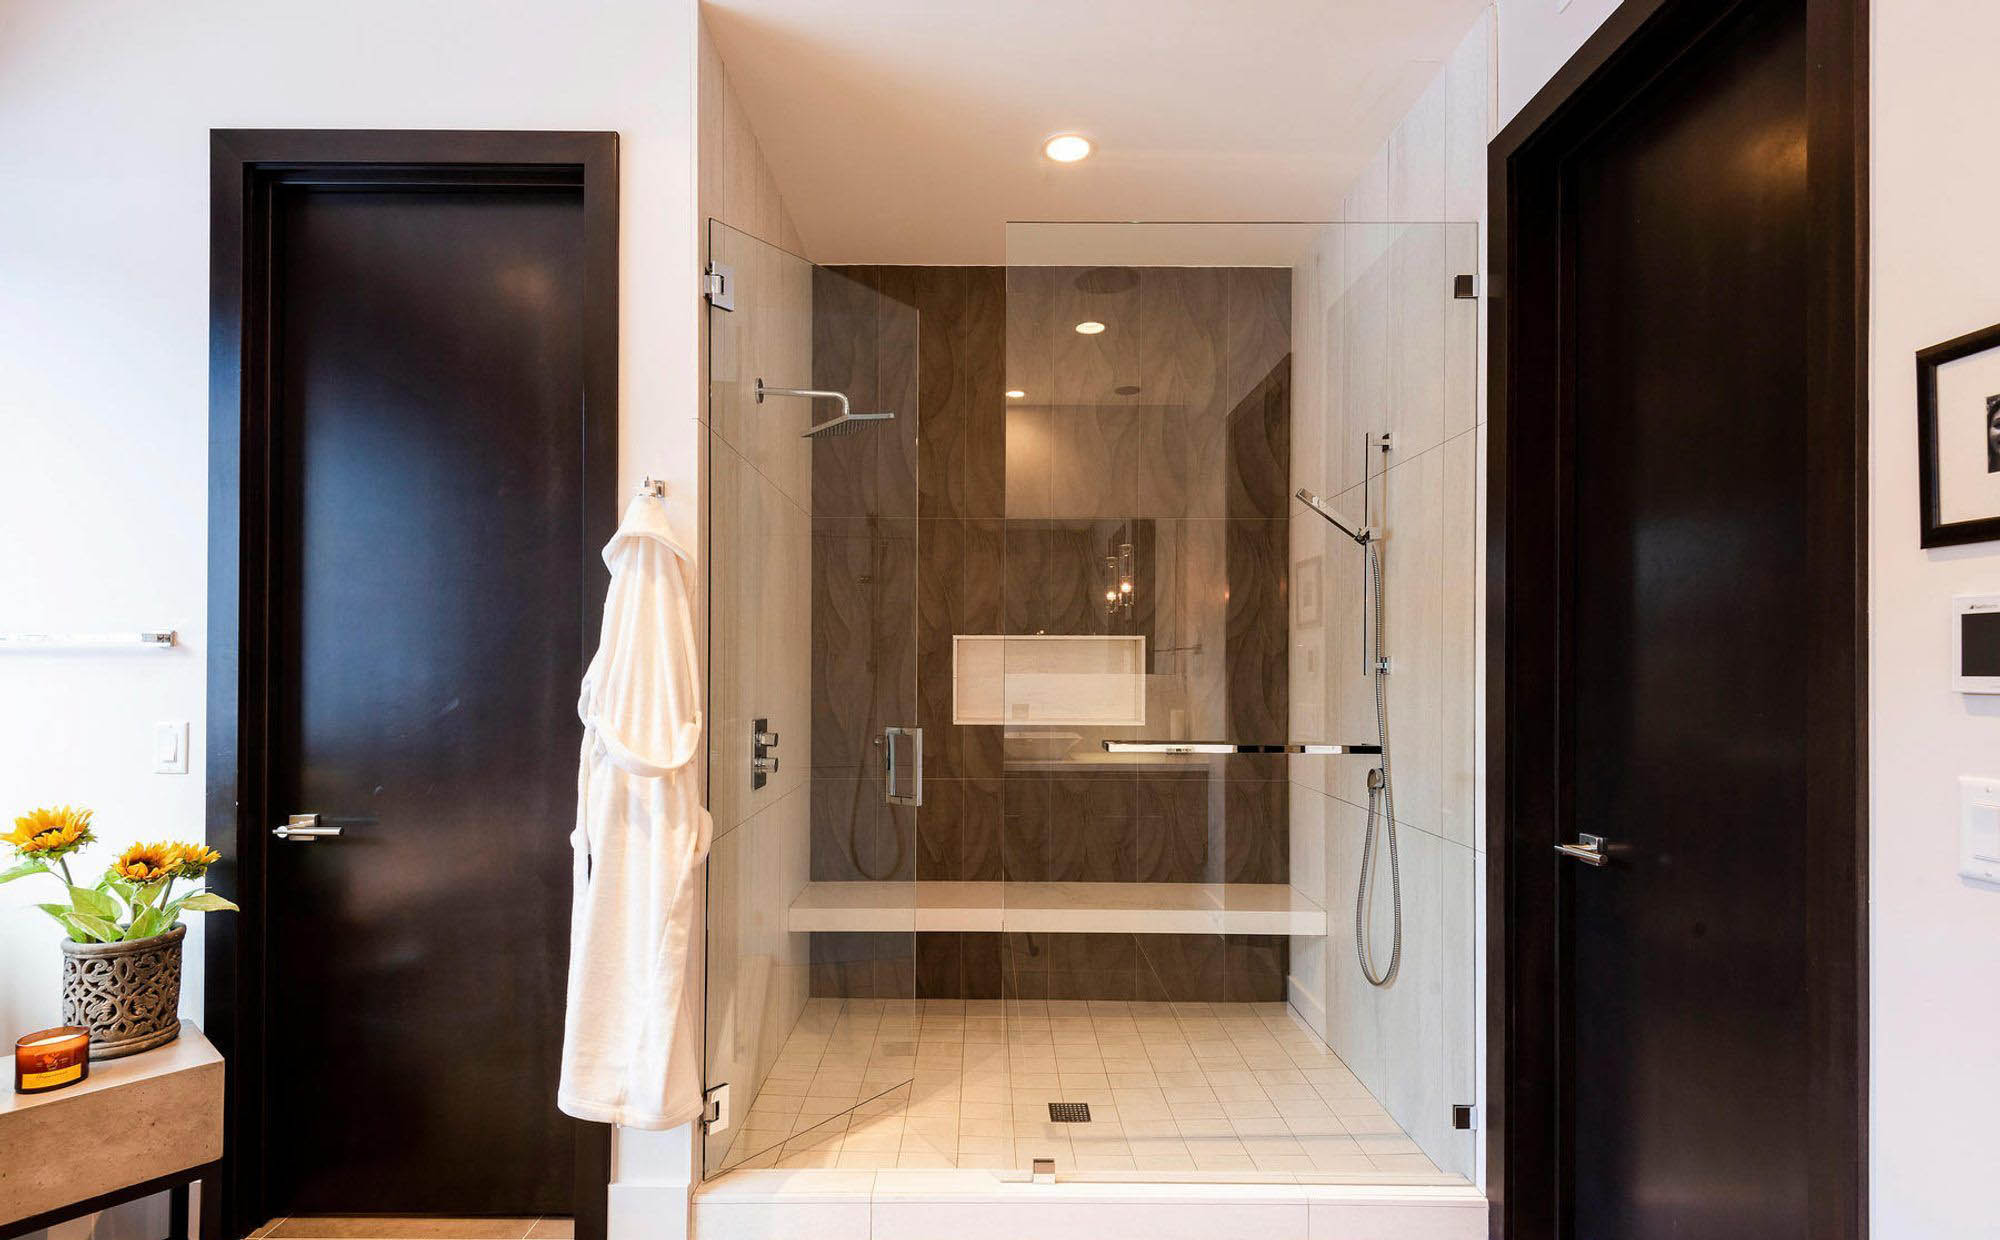 modern master bathroom standup shower with bench seat double shower heads glass doors cream and brown tiles